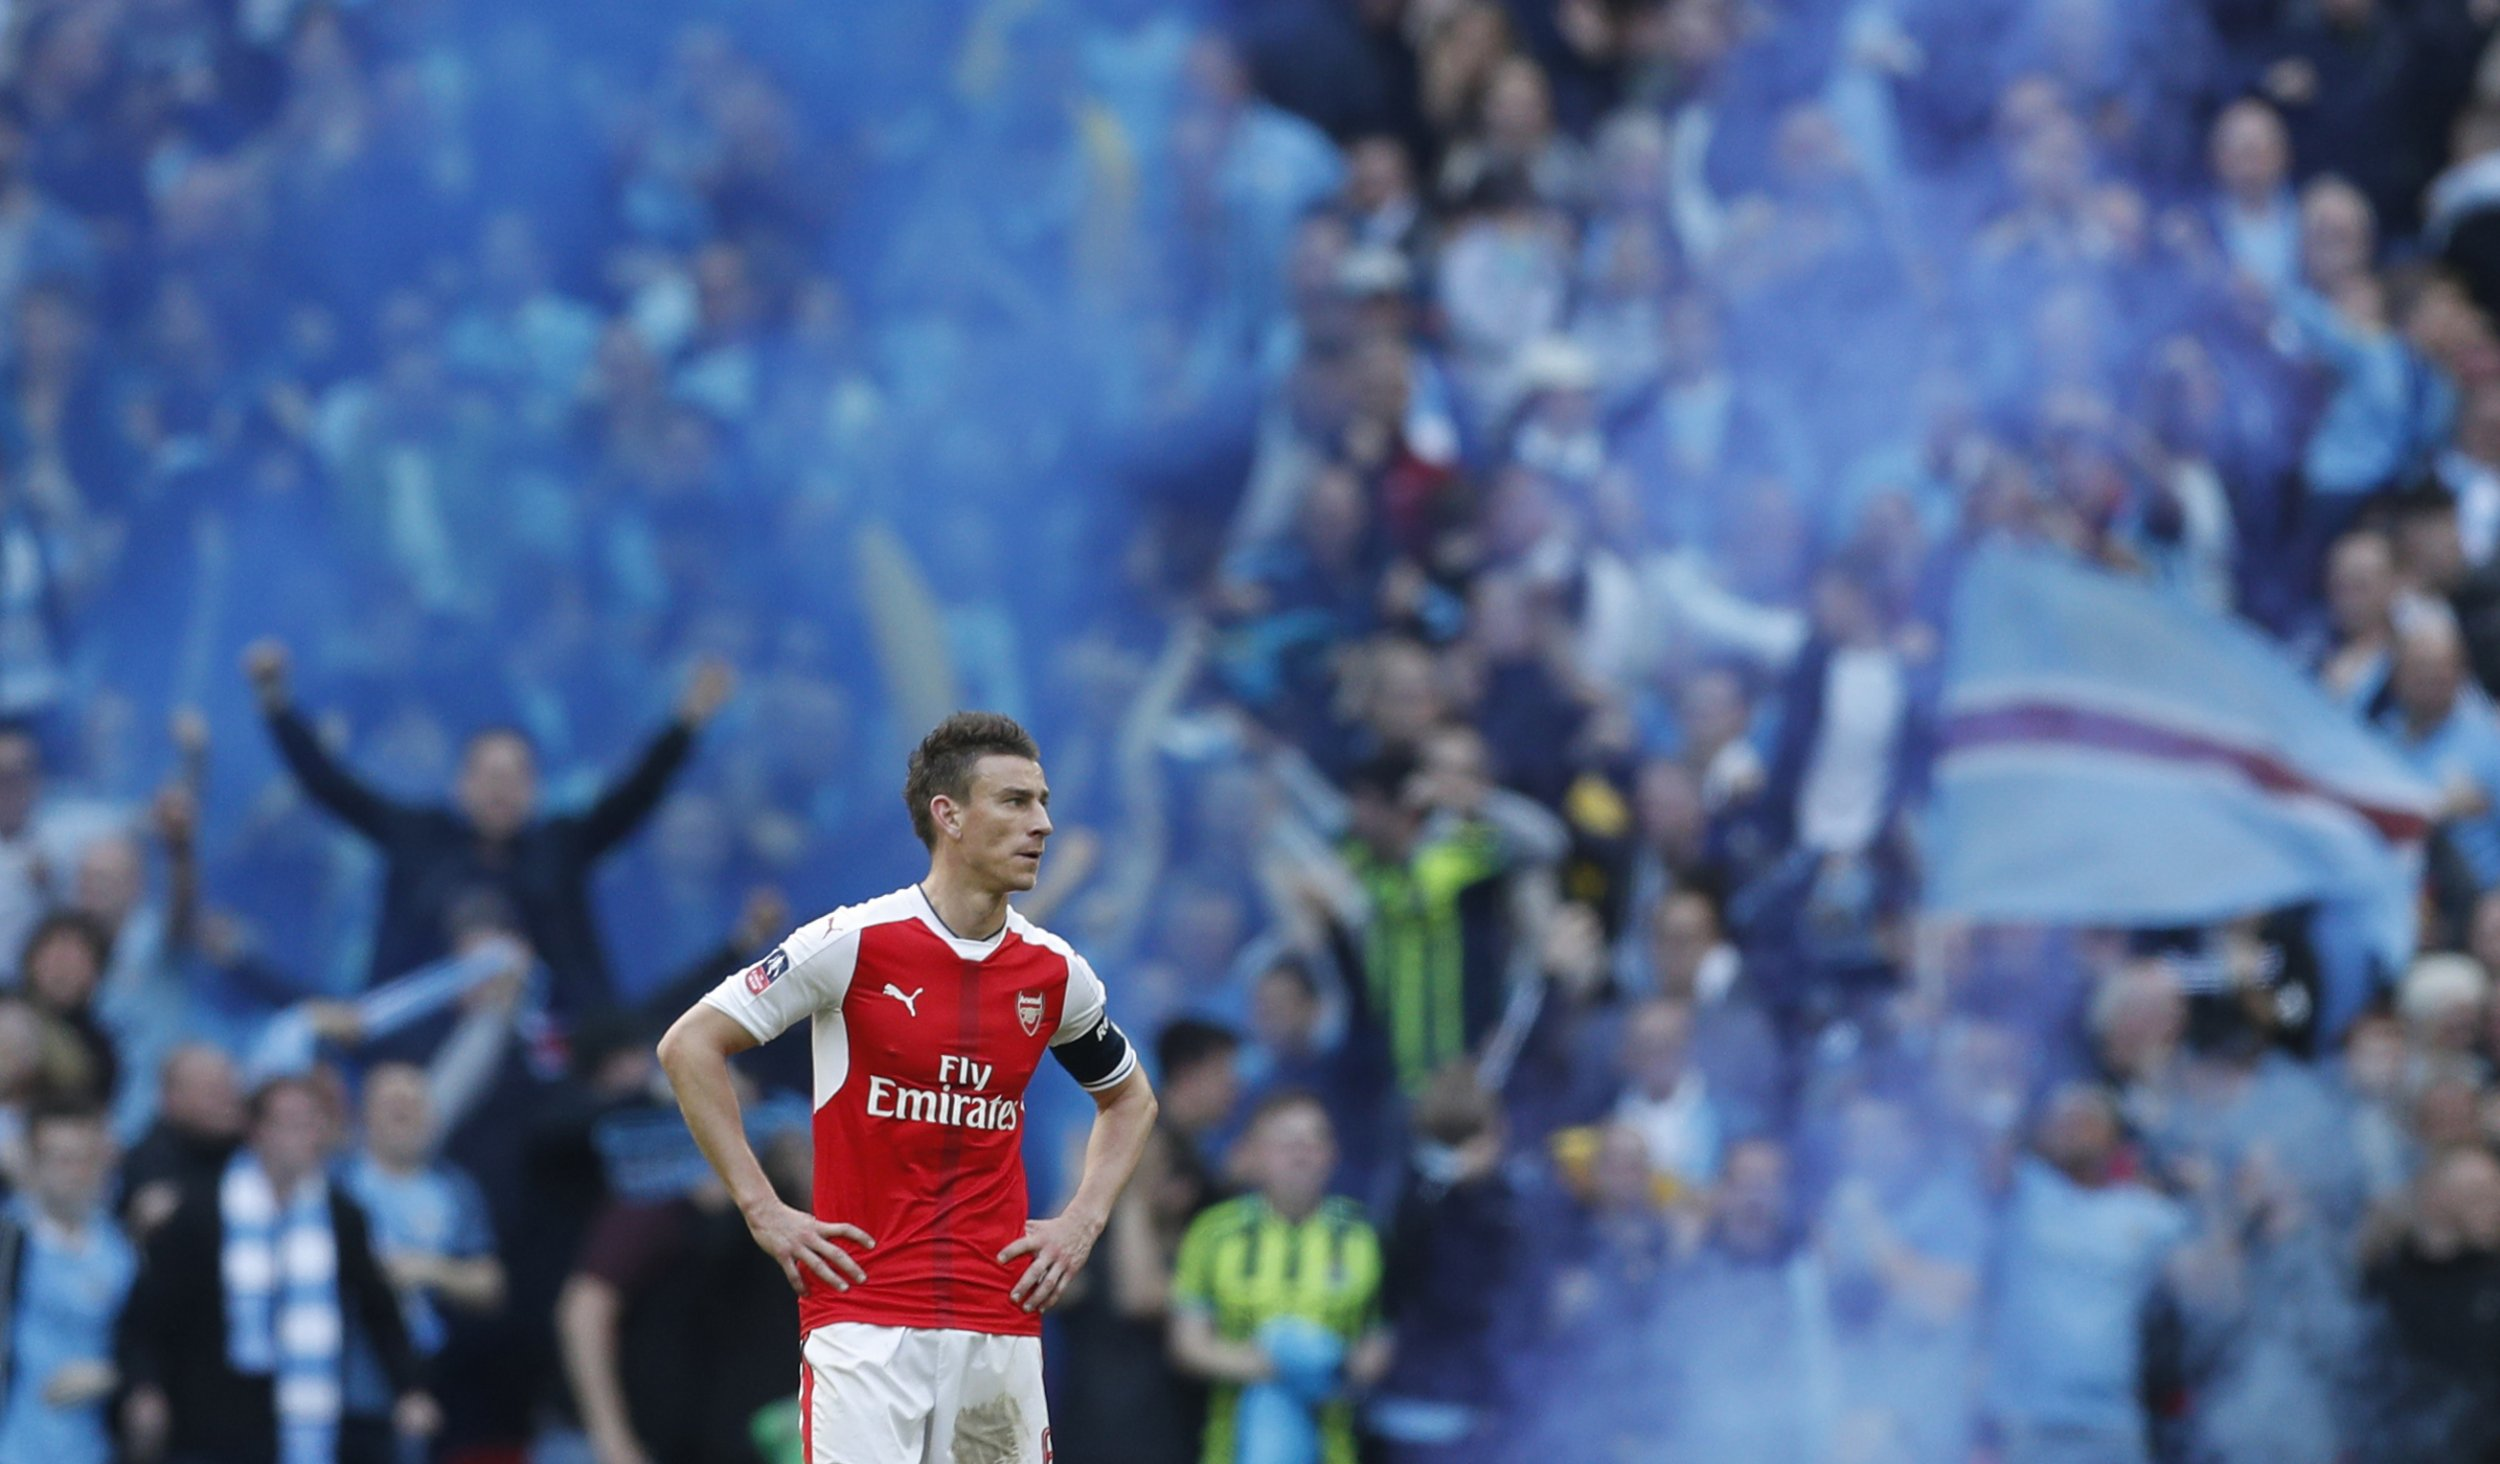 Arsenal defender Laurent Koscielny.